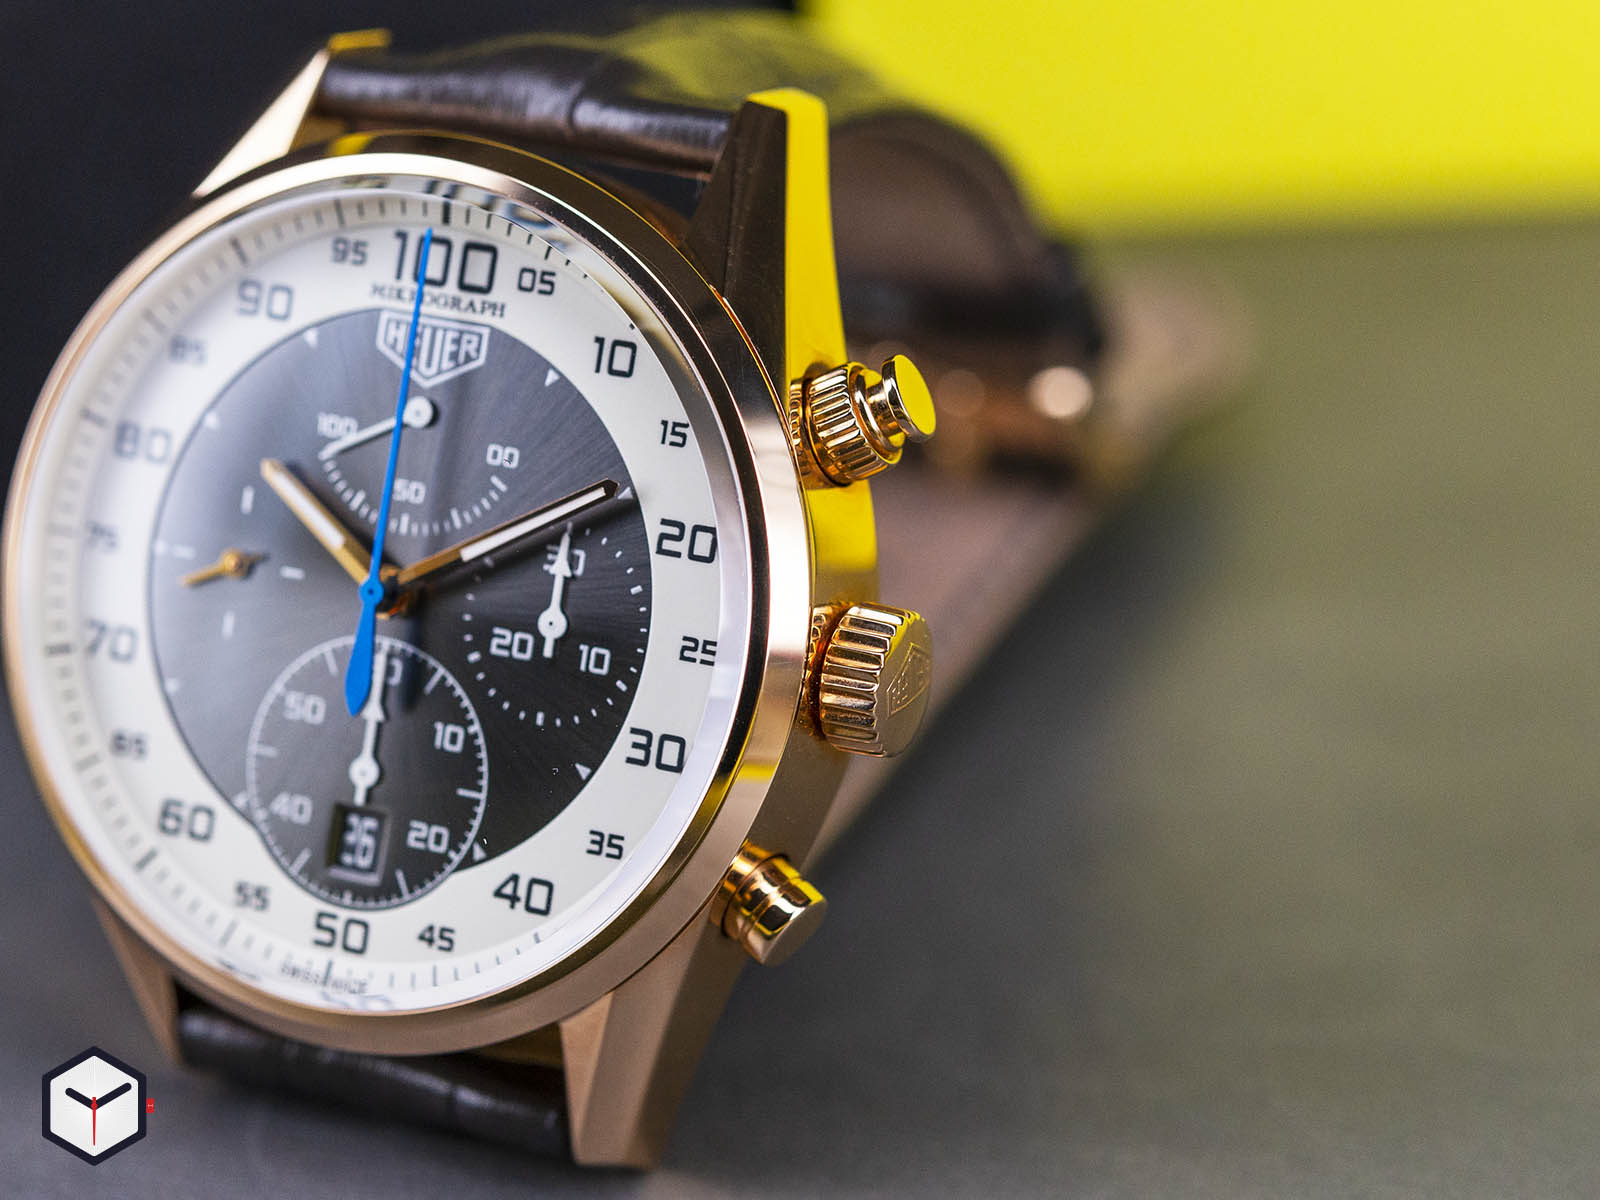 tag-heuer-carrera-mikrograph-1-100th-of-a-second-chronograph-4.jpg